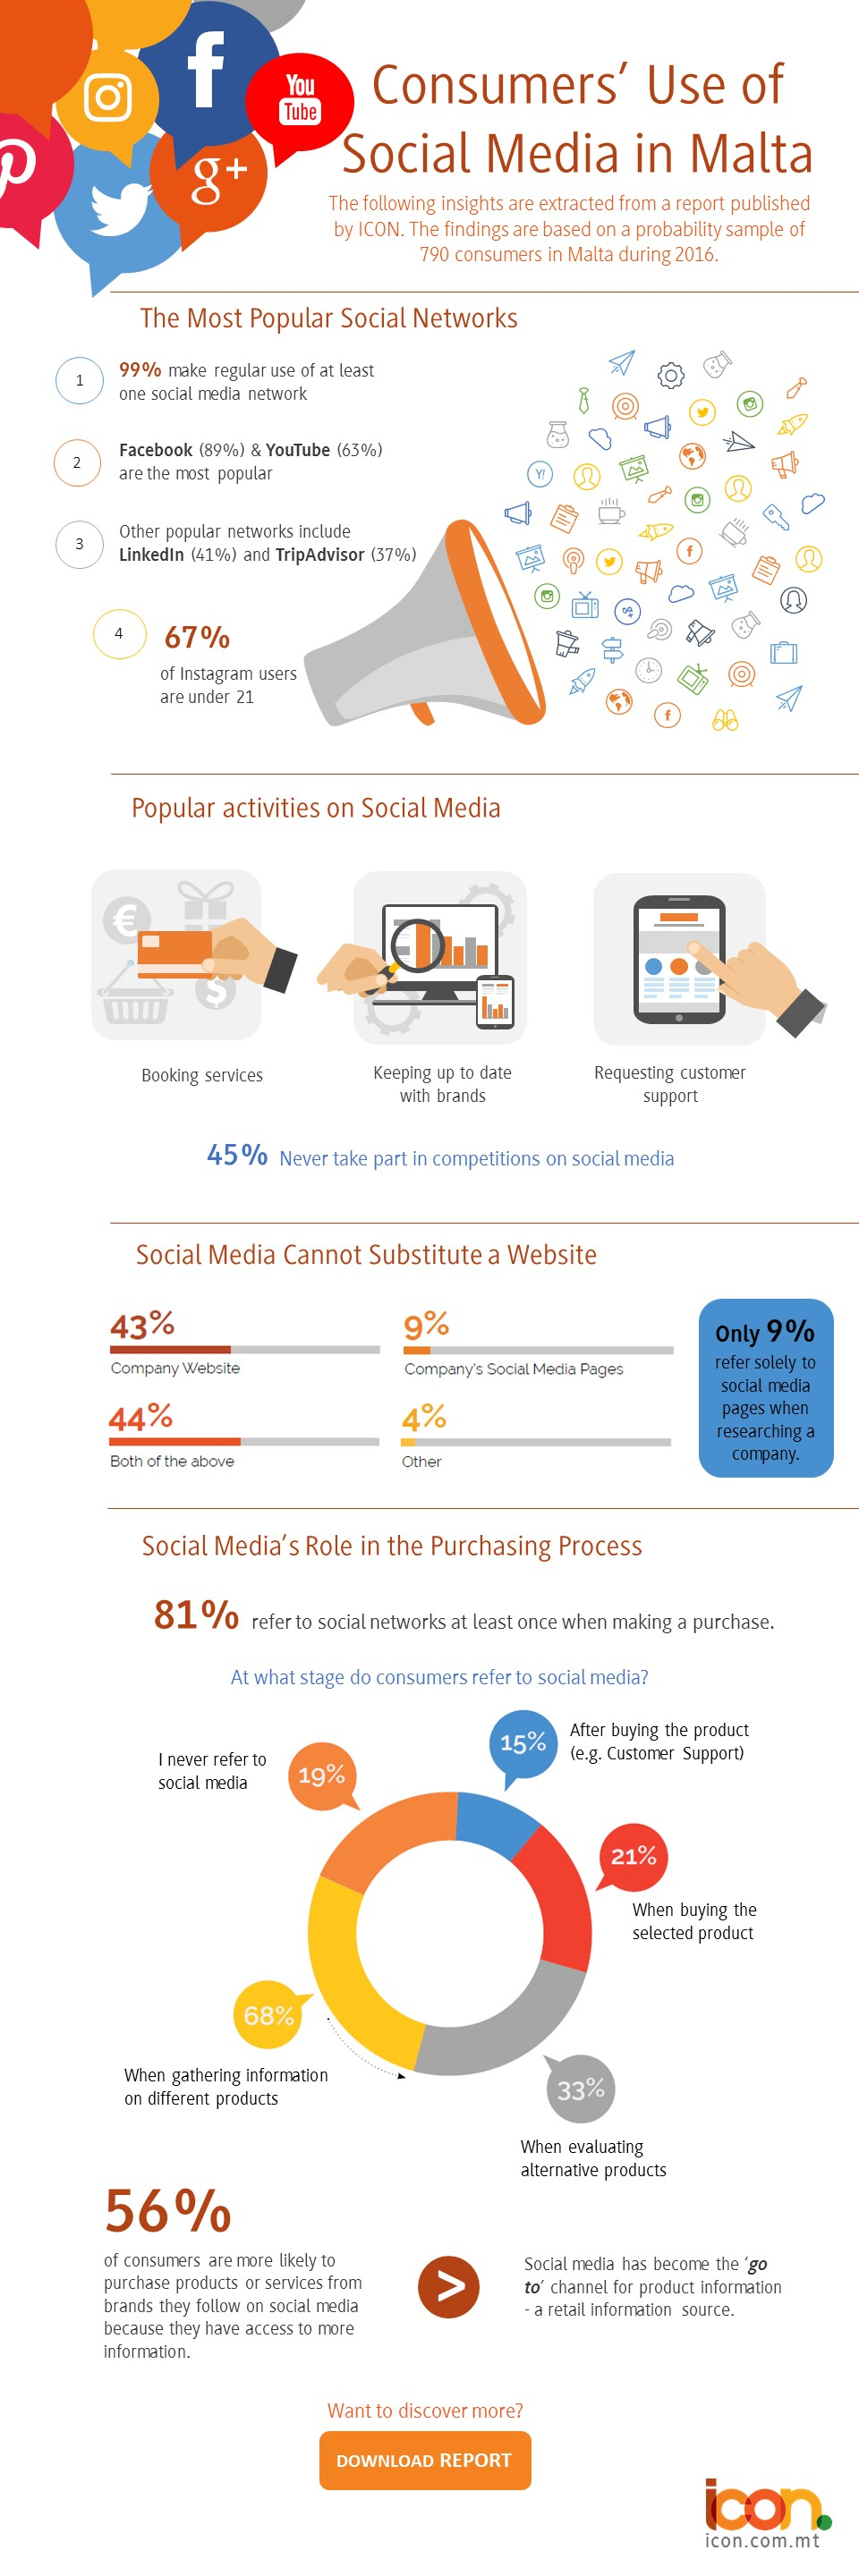 Consumers' Use of Social Media in Malta 2016_ICON Infographic